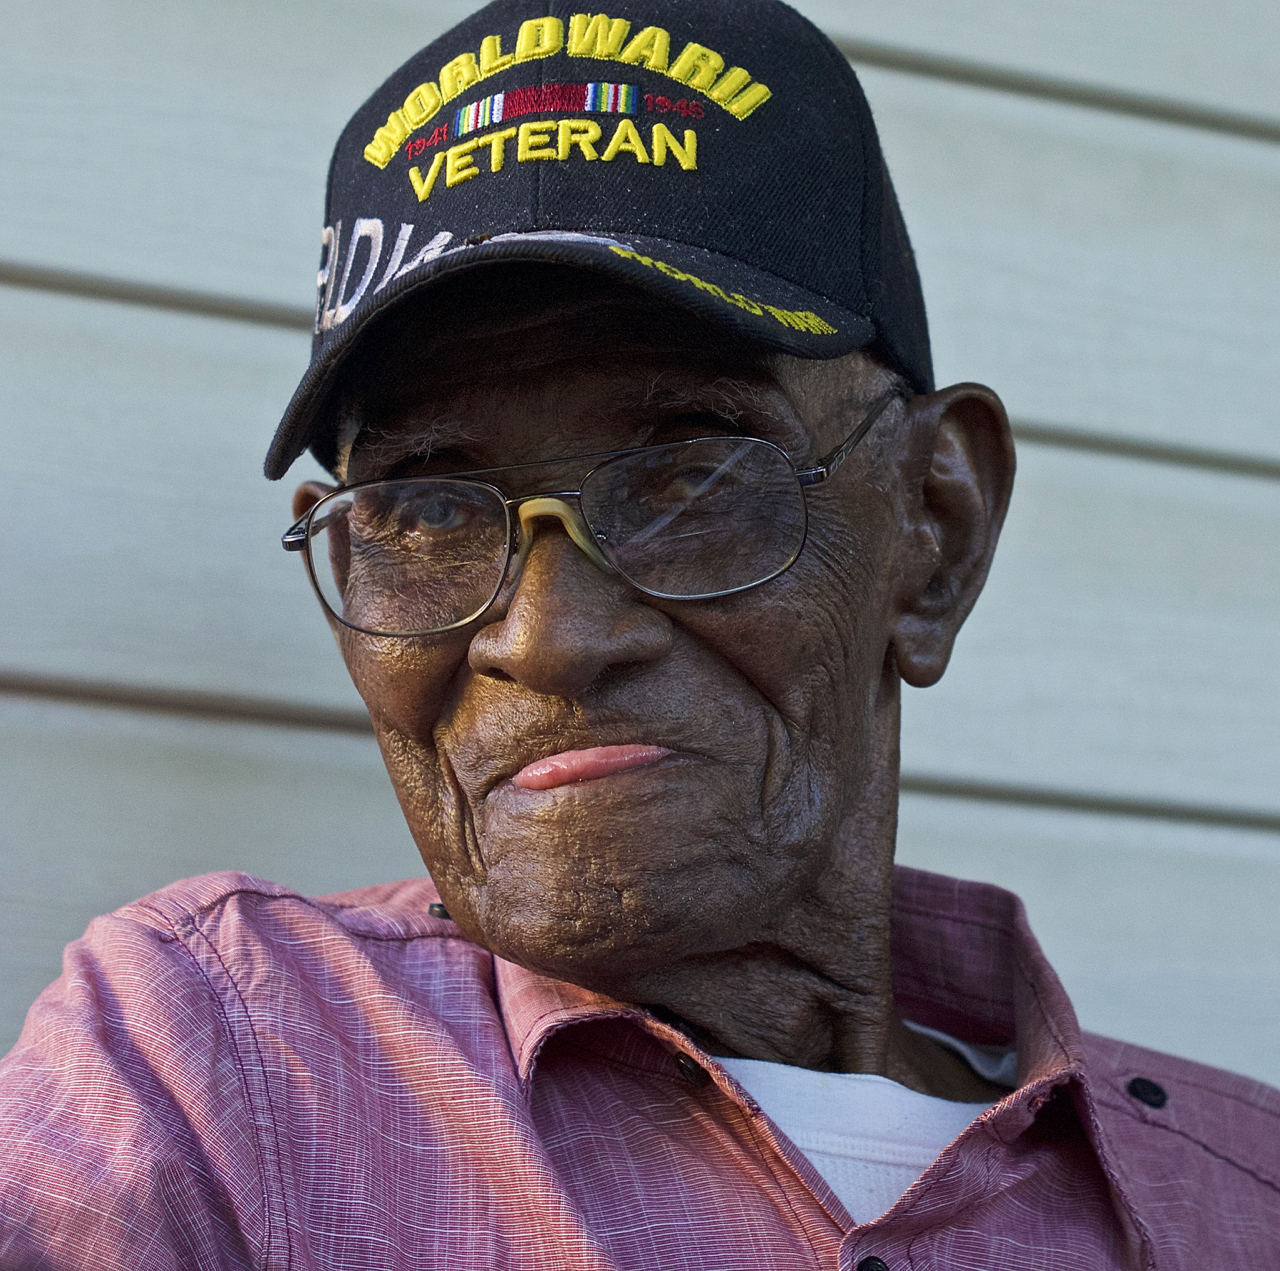 Richard Overton, an American treasure, is the nation's oldest living World War II veteran. He celebrated his 112th birthday on May 11, 2018.